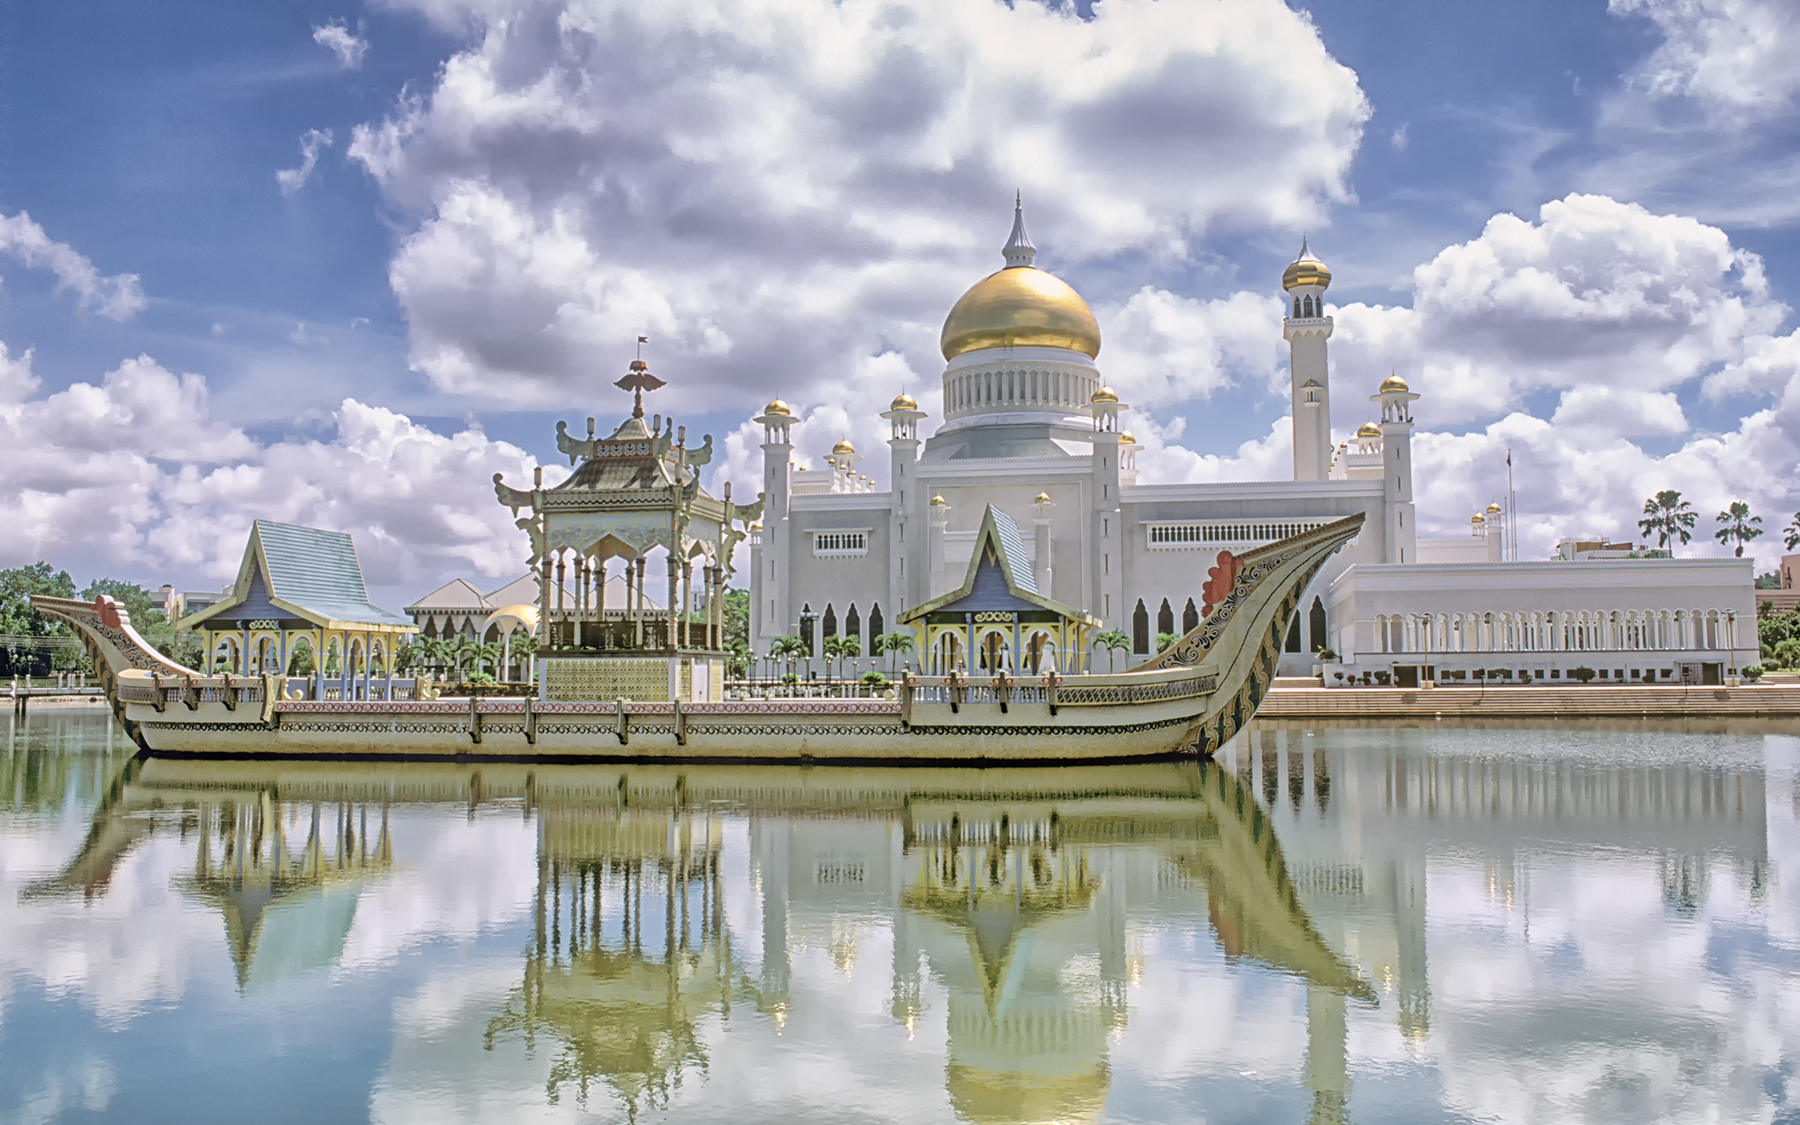 Omar Ali Saifuddien Mosque, Bandar Seri Begawan, the capital of the Sultanate of Brunei. Completed in 1958, this mosque is a wonderful example of modern Islamic architecture; it is recognized as one of the most beautiful mosques in the Asia Pacific region. It is truly awesome!